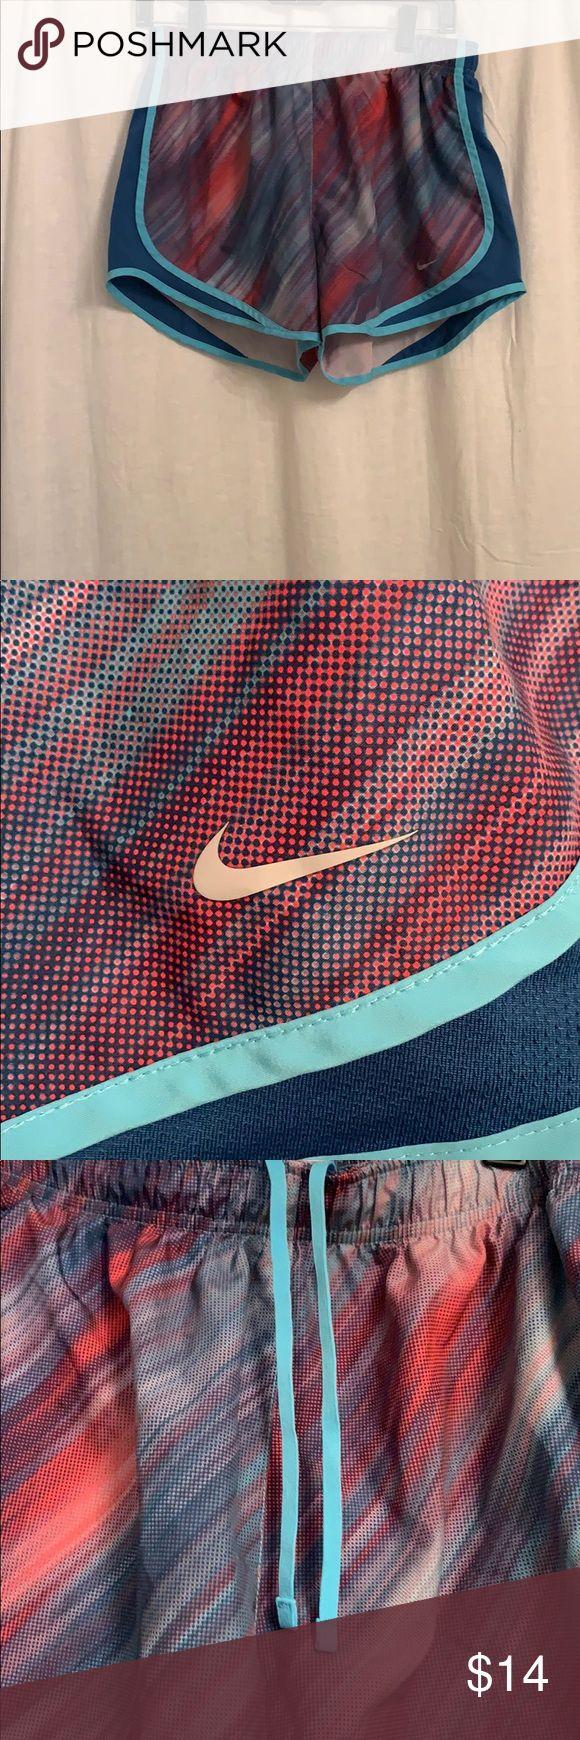 Nike Dri-fit work out shorts Brand new work out shorts with compression underwea…